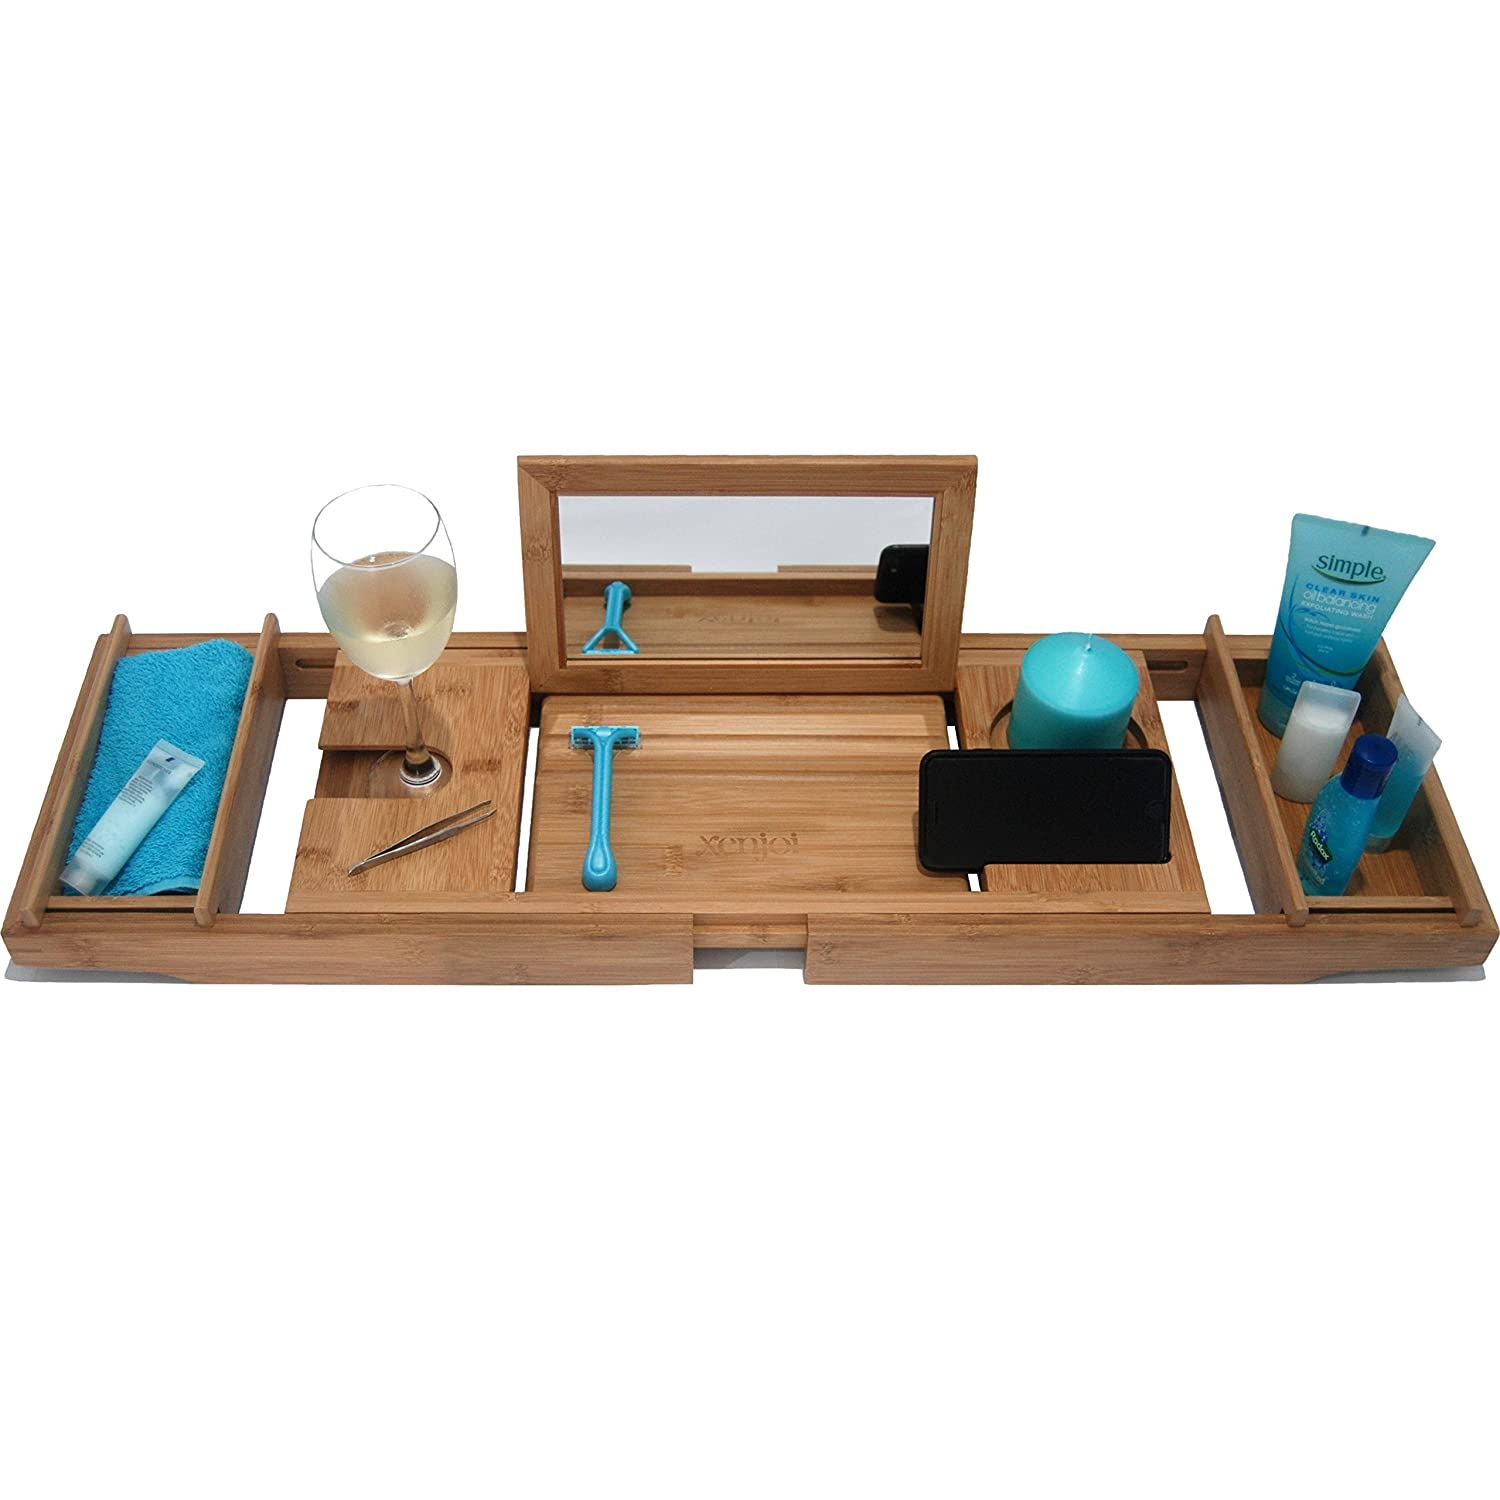 This ONE HAS A Mirror - Our Luxury Bamboo Bathtub Tray/Bathtub Caddy with Mirror Also Comes with Extending Non Slip Sides, Wine Glass Holder, 2 Removable Storage Shelves & Much More xenjoi X-1996